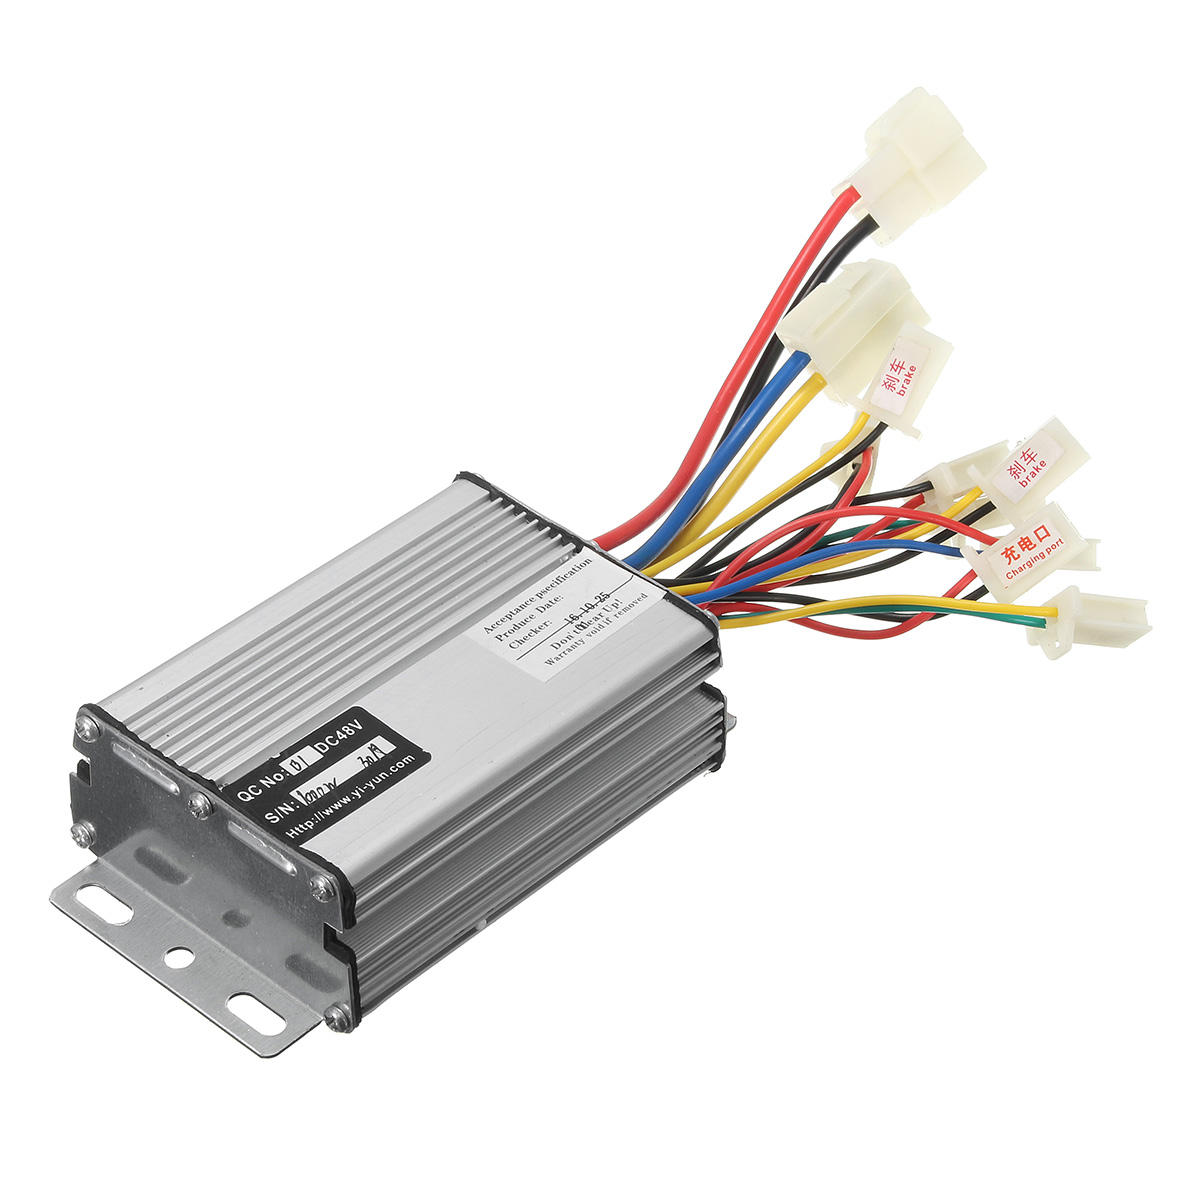 48v1000w Electric Vehicle Motor Brush Controller Scooter Sale Home Wiring For An Car